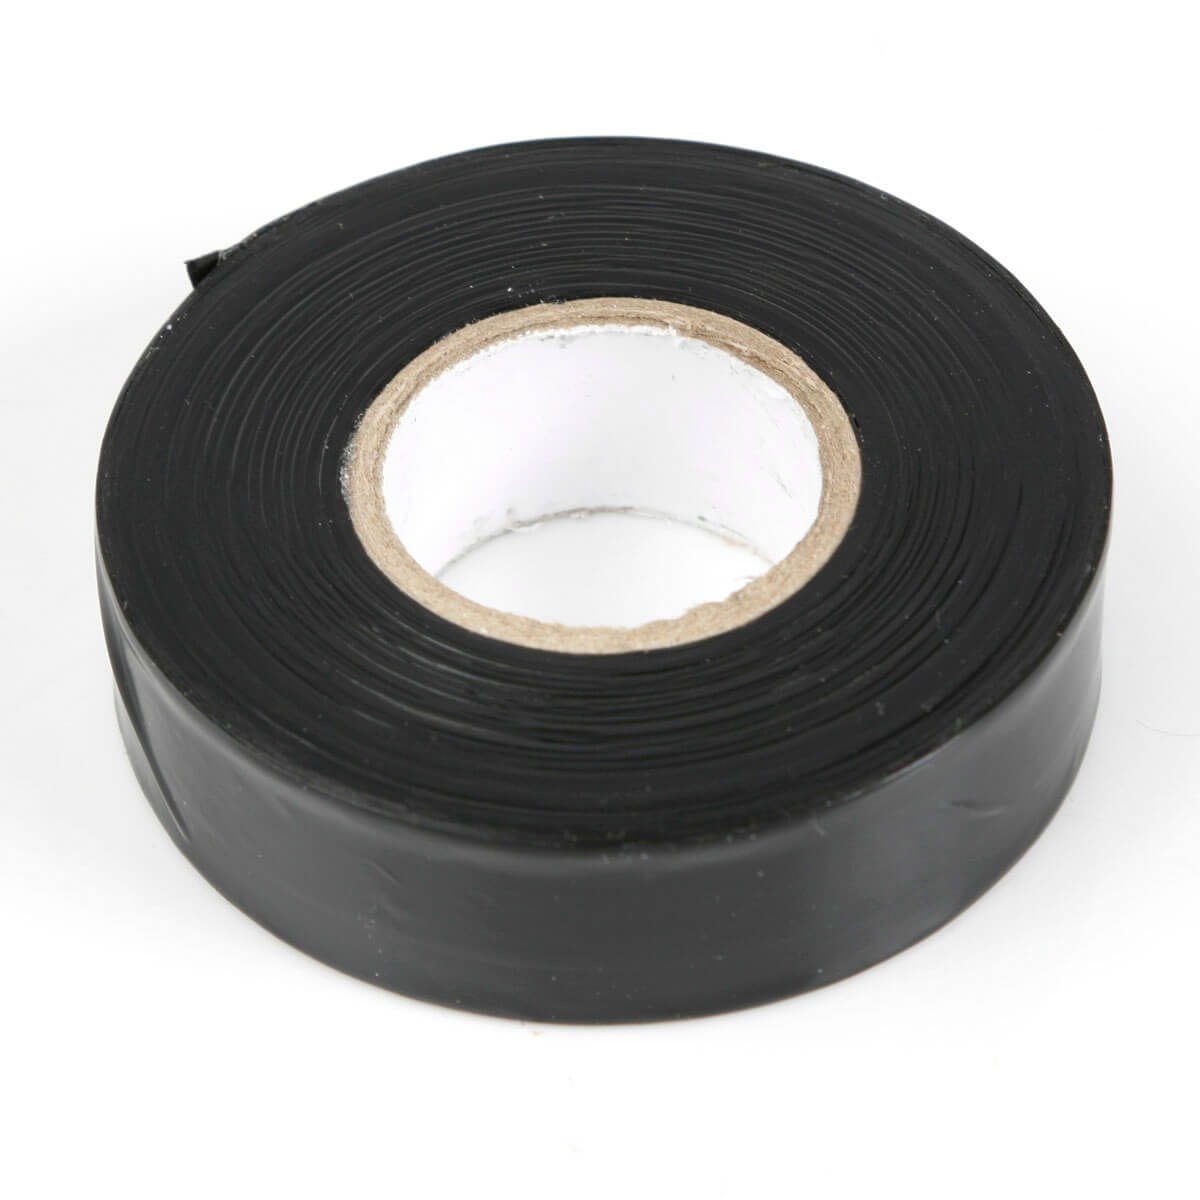 hight resolution of wiring harness tape black